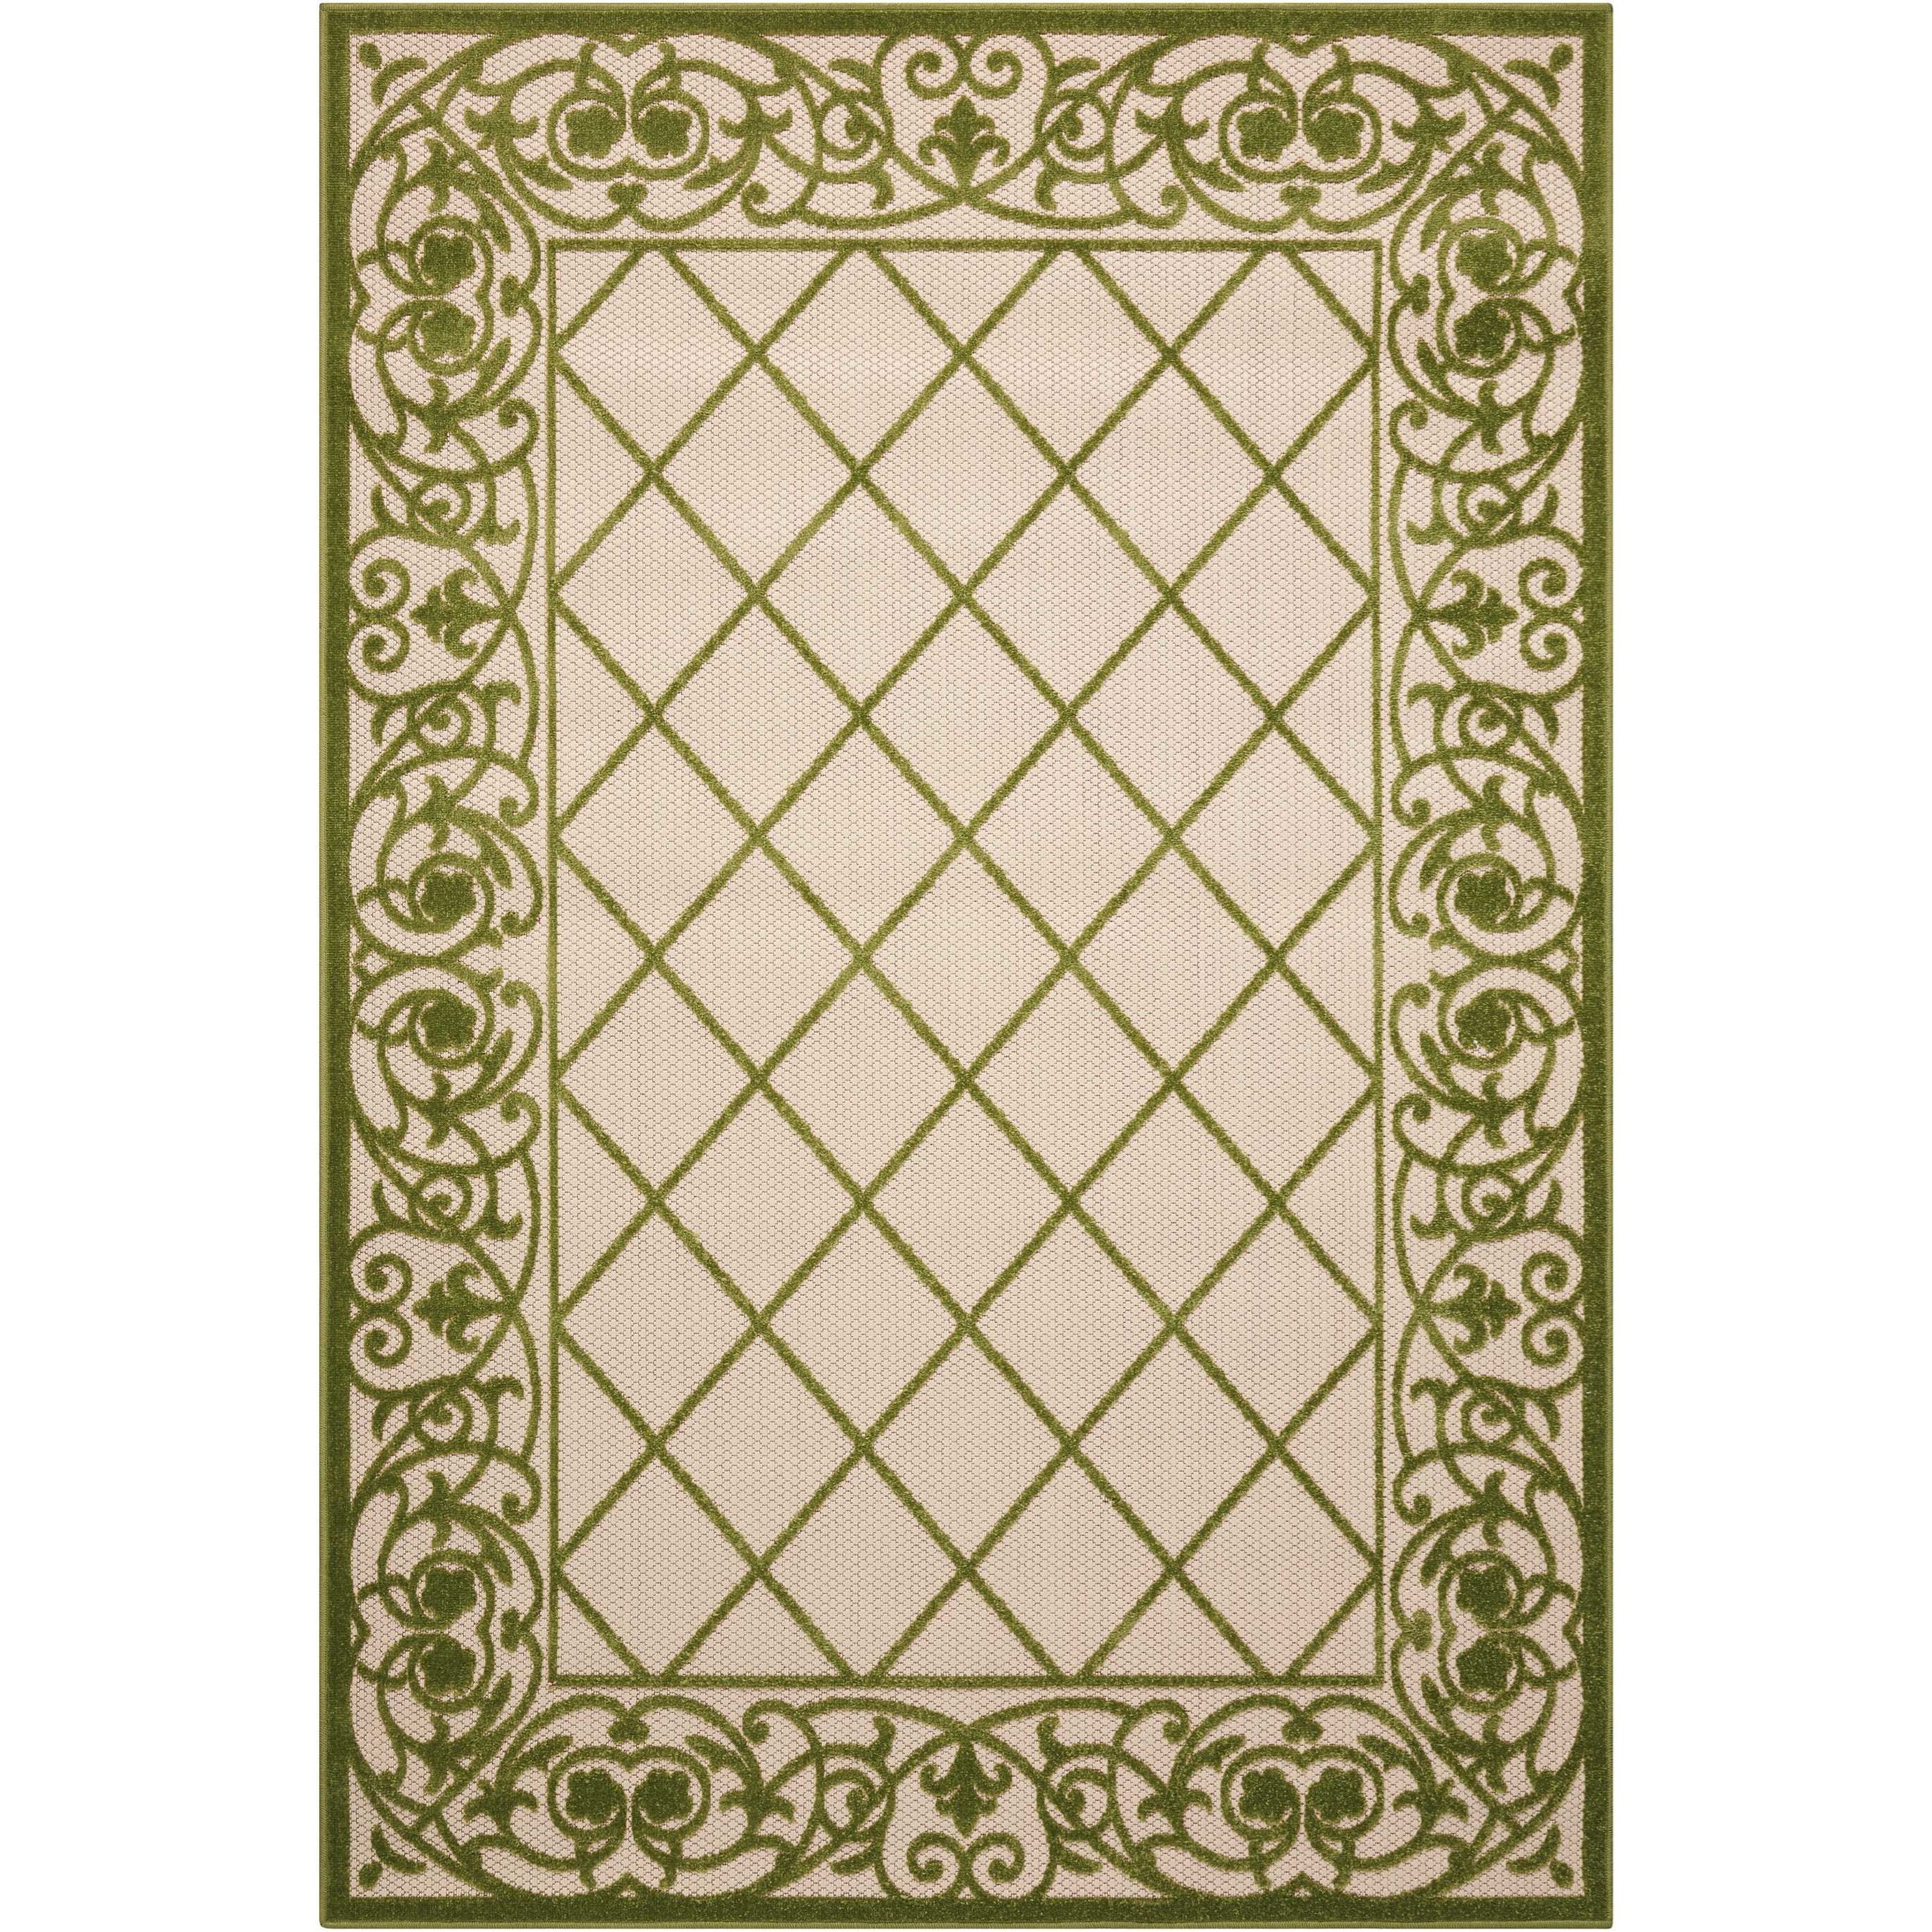 "Aloha 9'6"" X 13' Green Rug by Nourison at Sprintz Furniture"